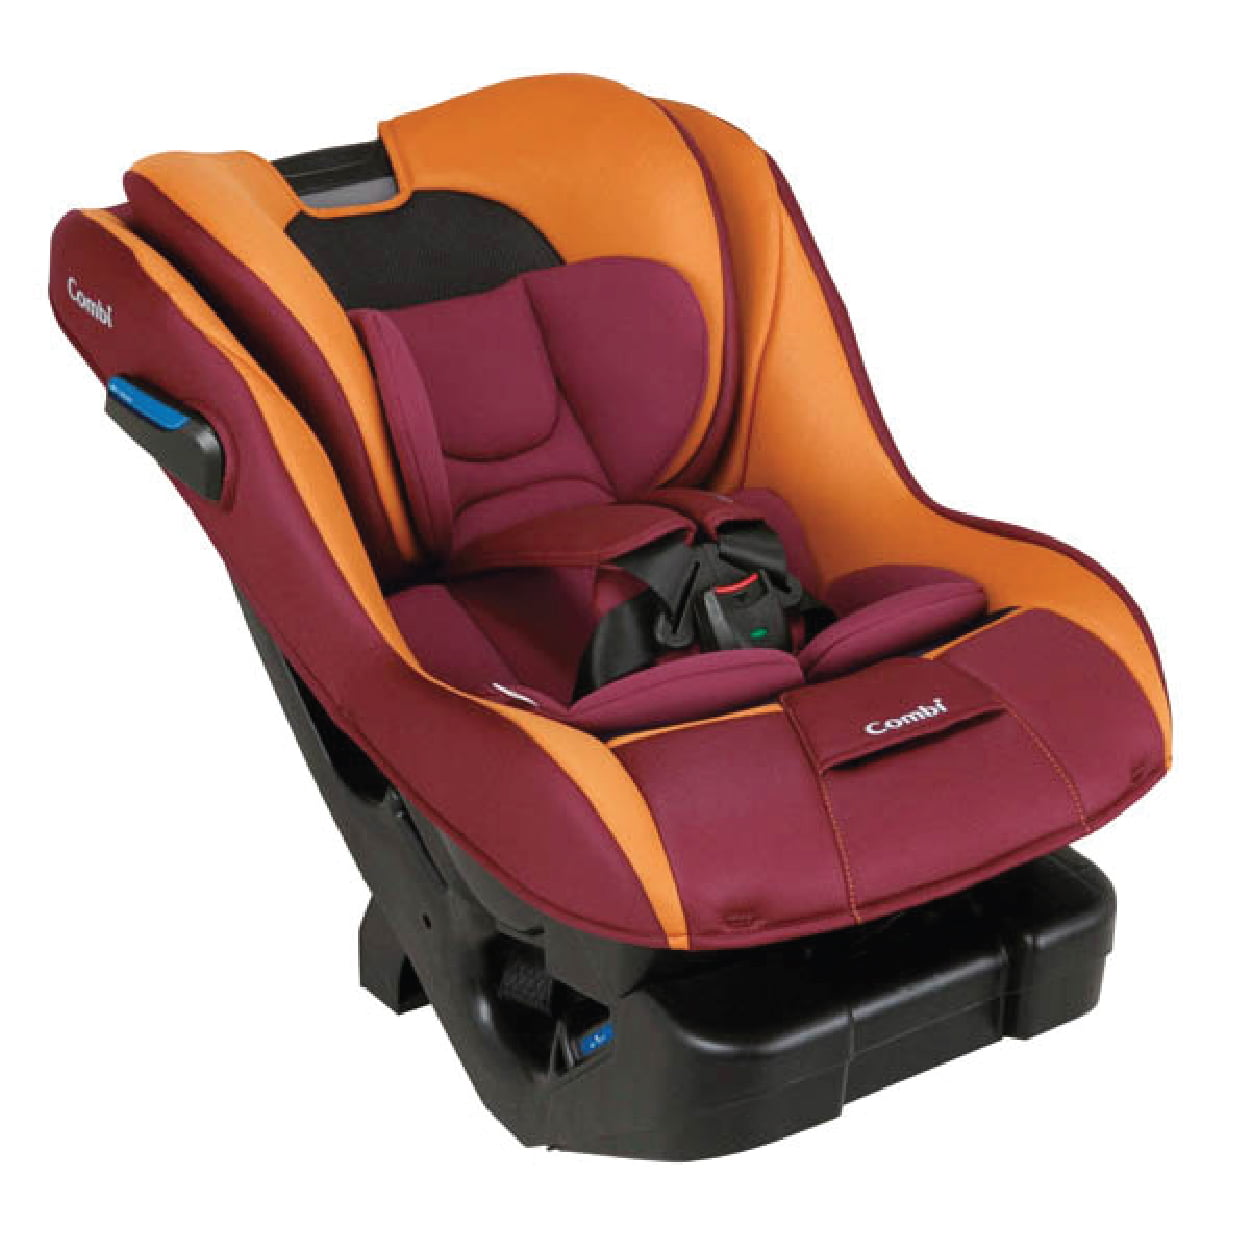 combi malgott s convertible car seat baby needs online store malaysia. Black Bedroom Furniture Sets. Home Design Ideas